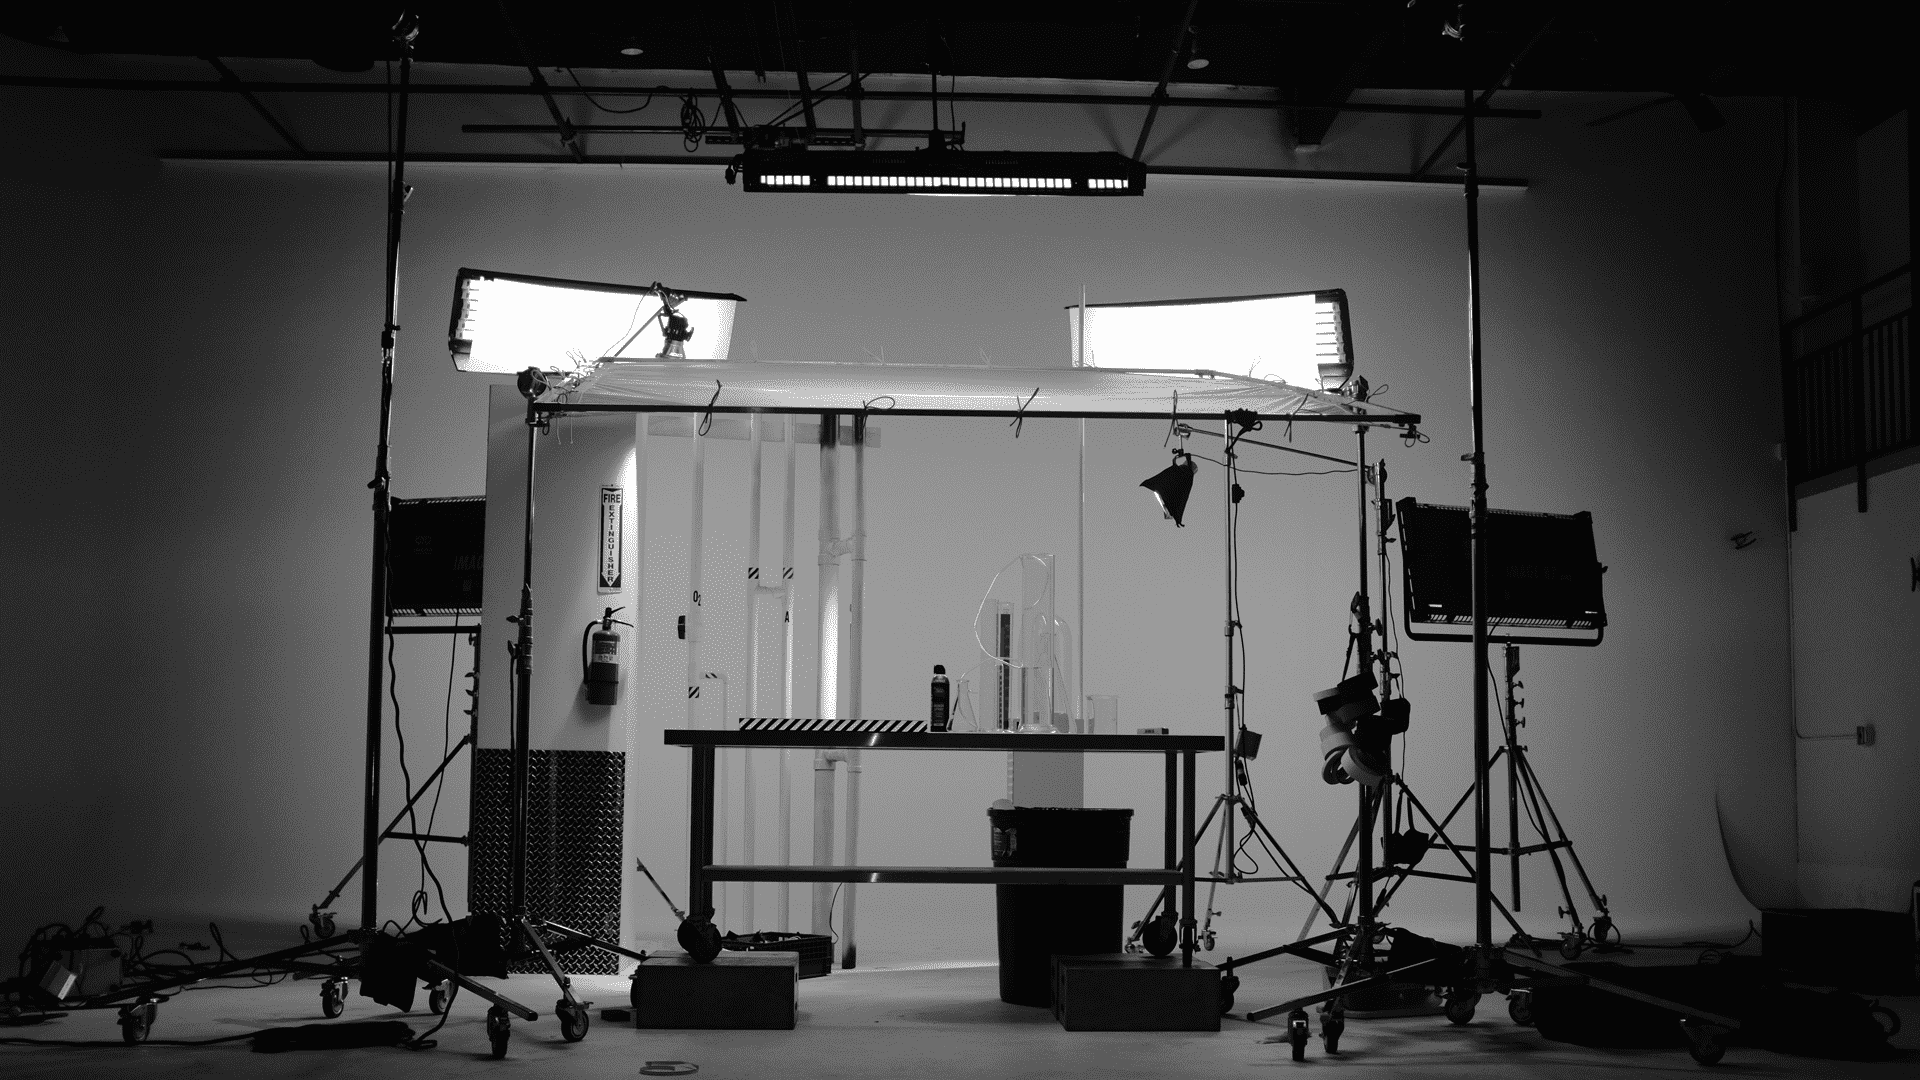 studio location minimum cost professional video production